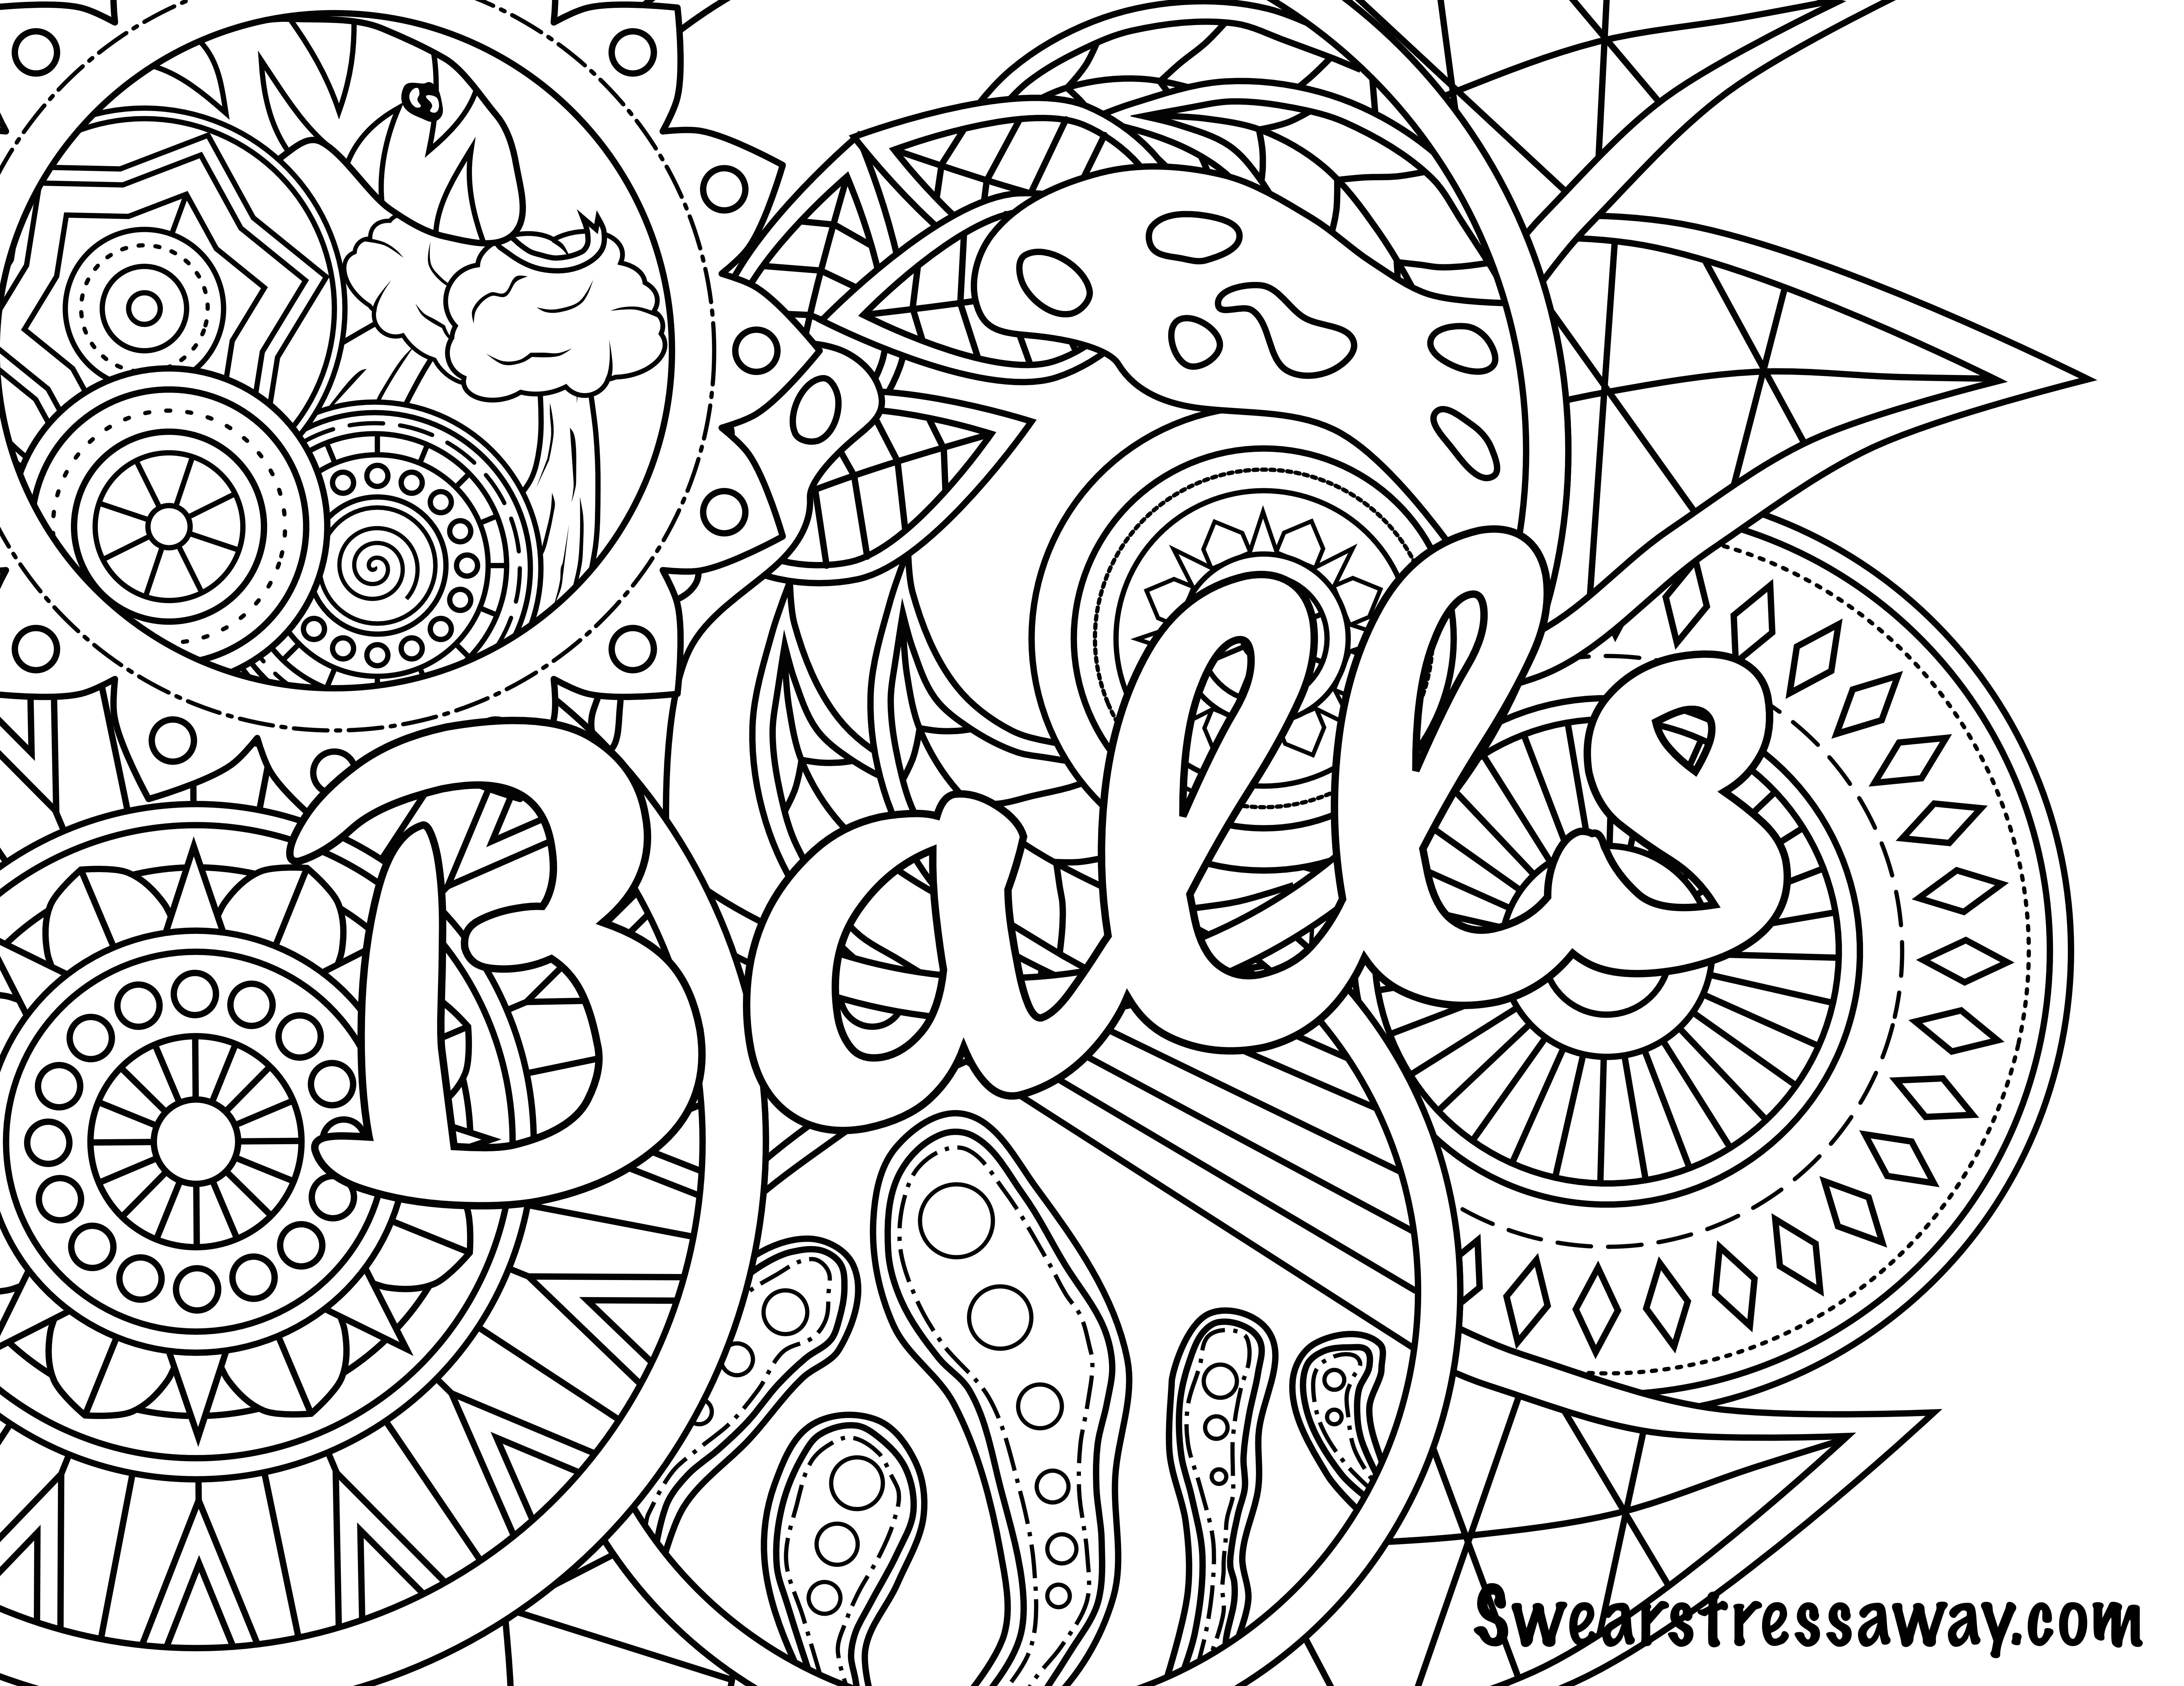 Balls - Swear Word Coloring Page - Adult Coloring Page - Free Printable Coloring Pages For Adults Only Swear Words